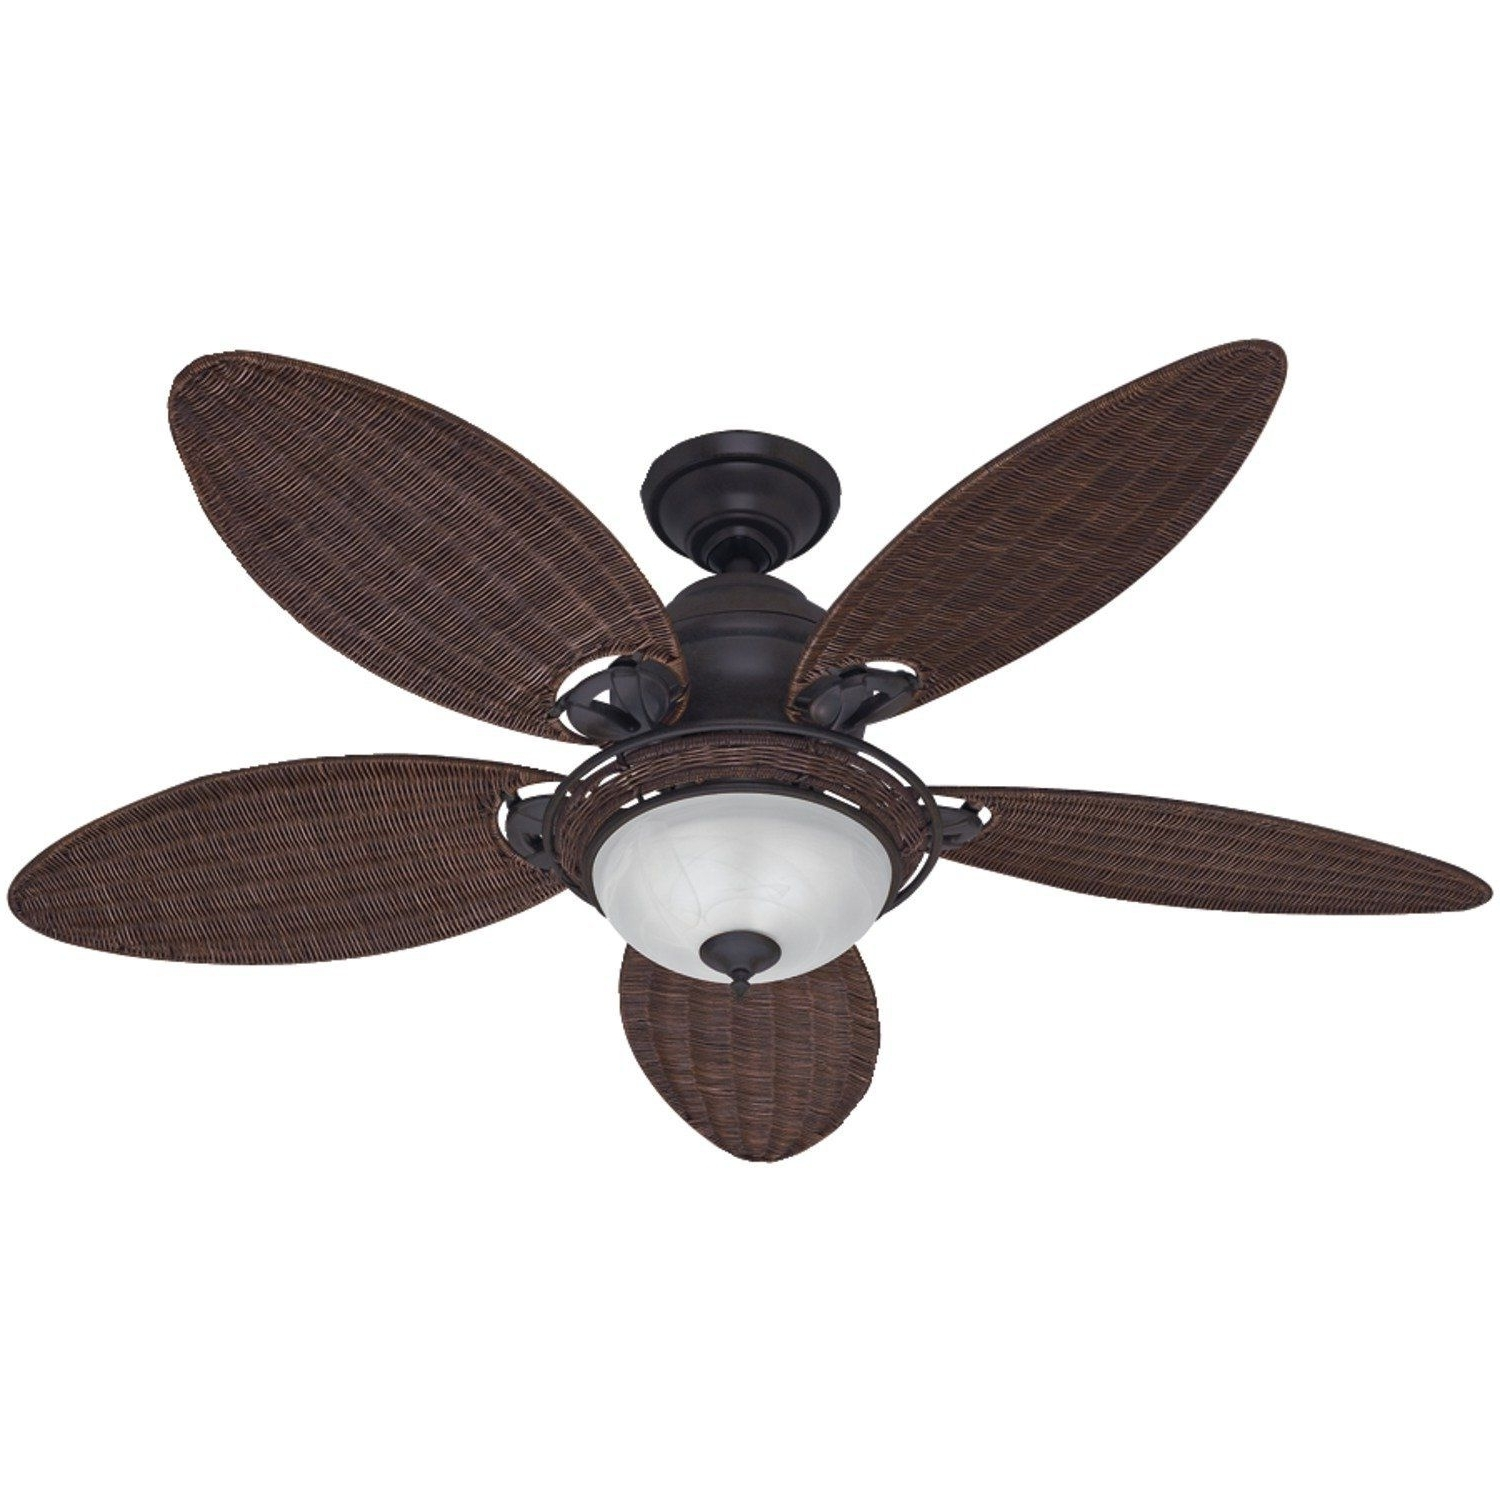 Most Recently Released Amazon: Hunter Fan Company 54095 Caribbean Breeze 54 Inch Throughout Wicker Outdoor Ceiling Fans (View 4 of 20)